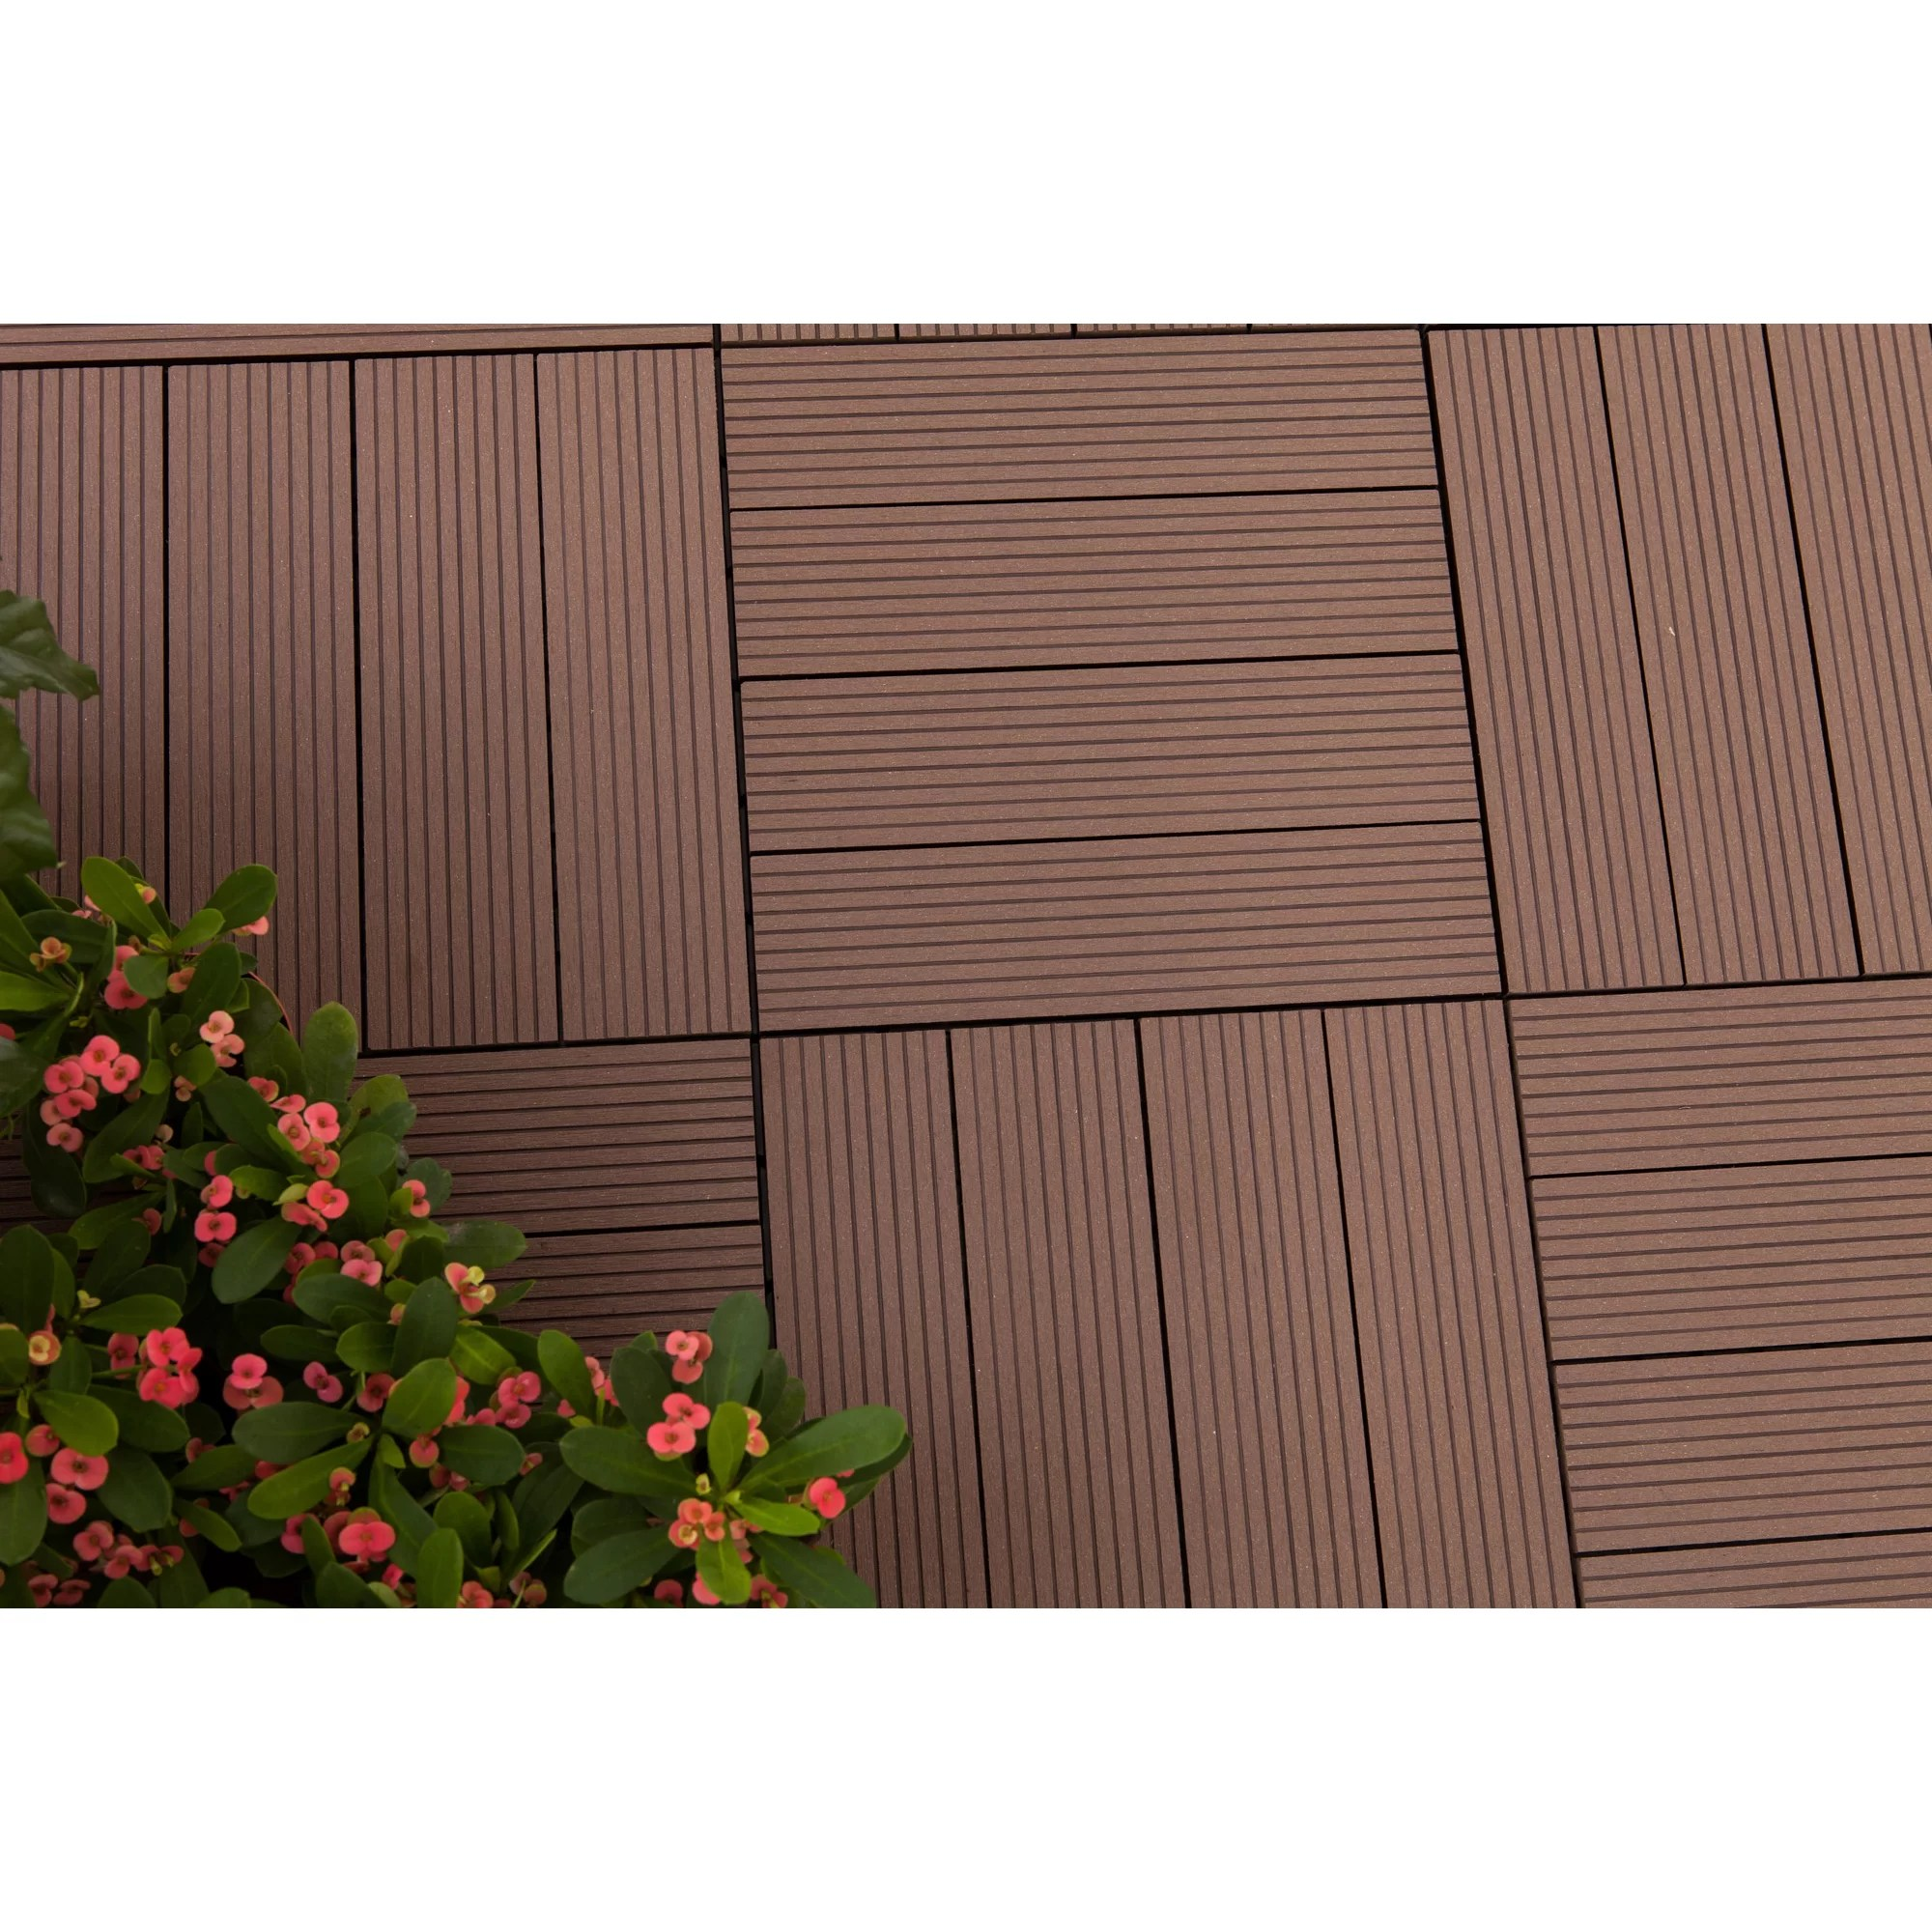 Composite Deck Tiles Vifah Composite Ipe 12 Quot X 12 Quot Deck Tiles Wayfair